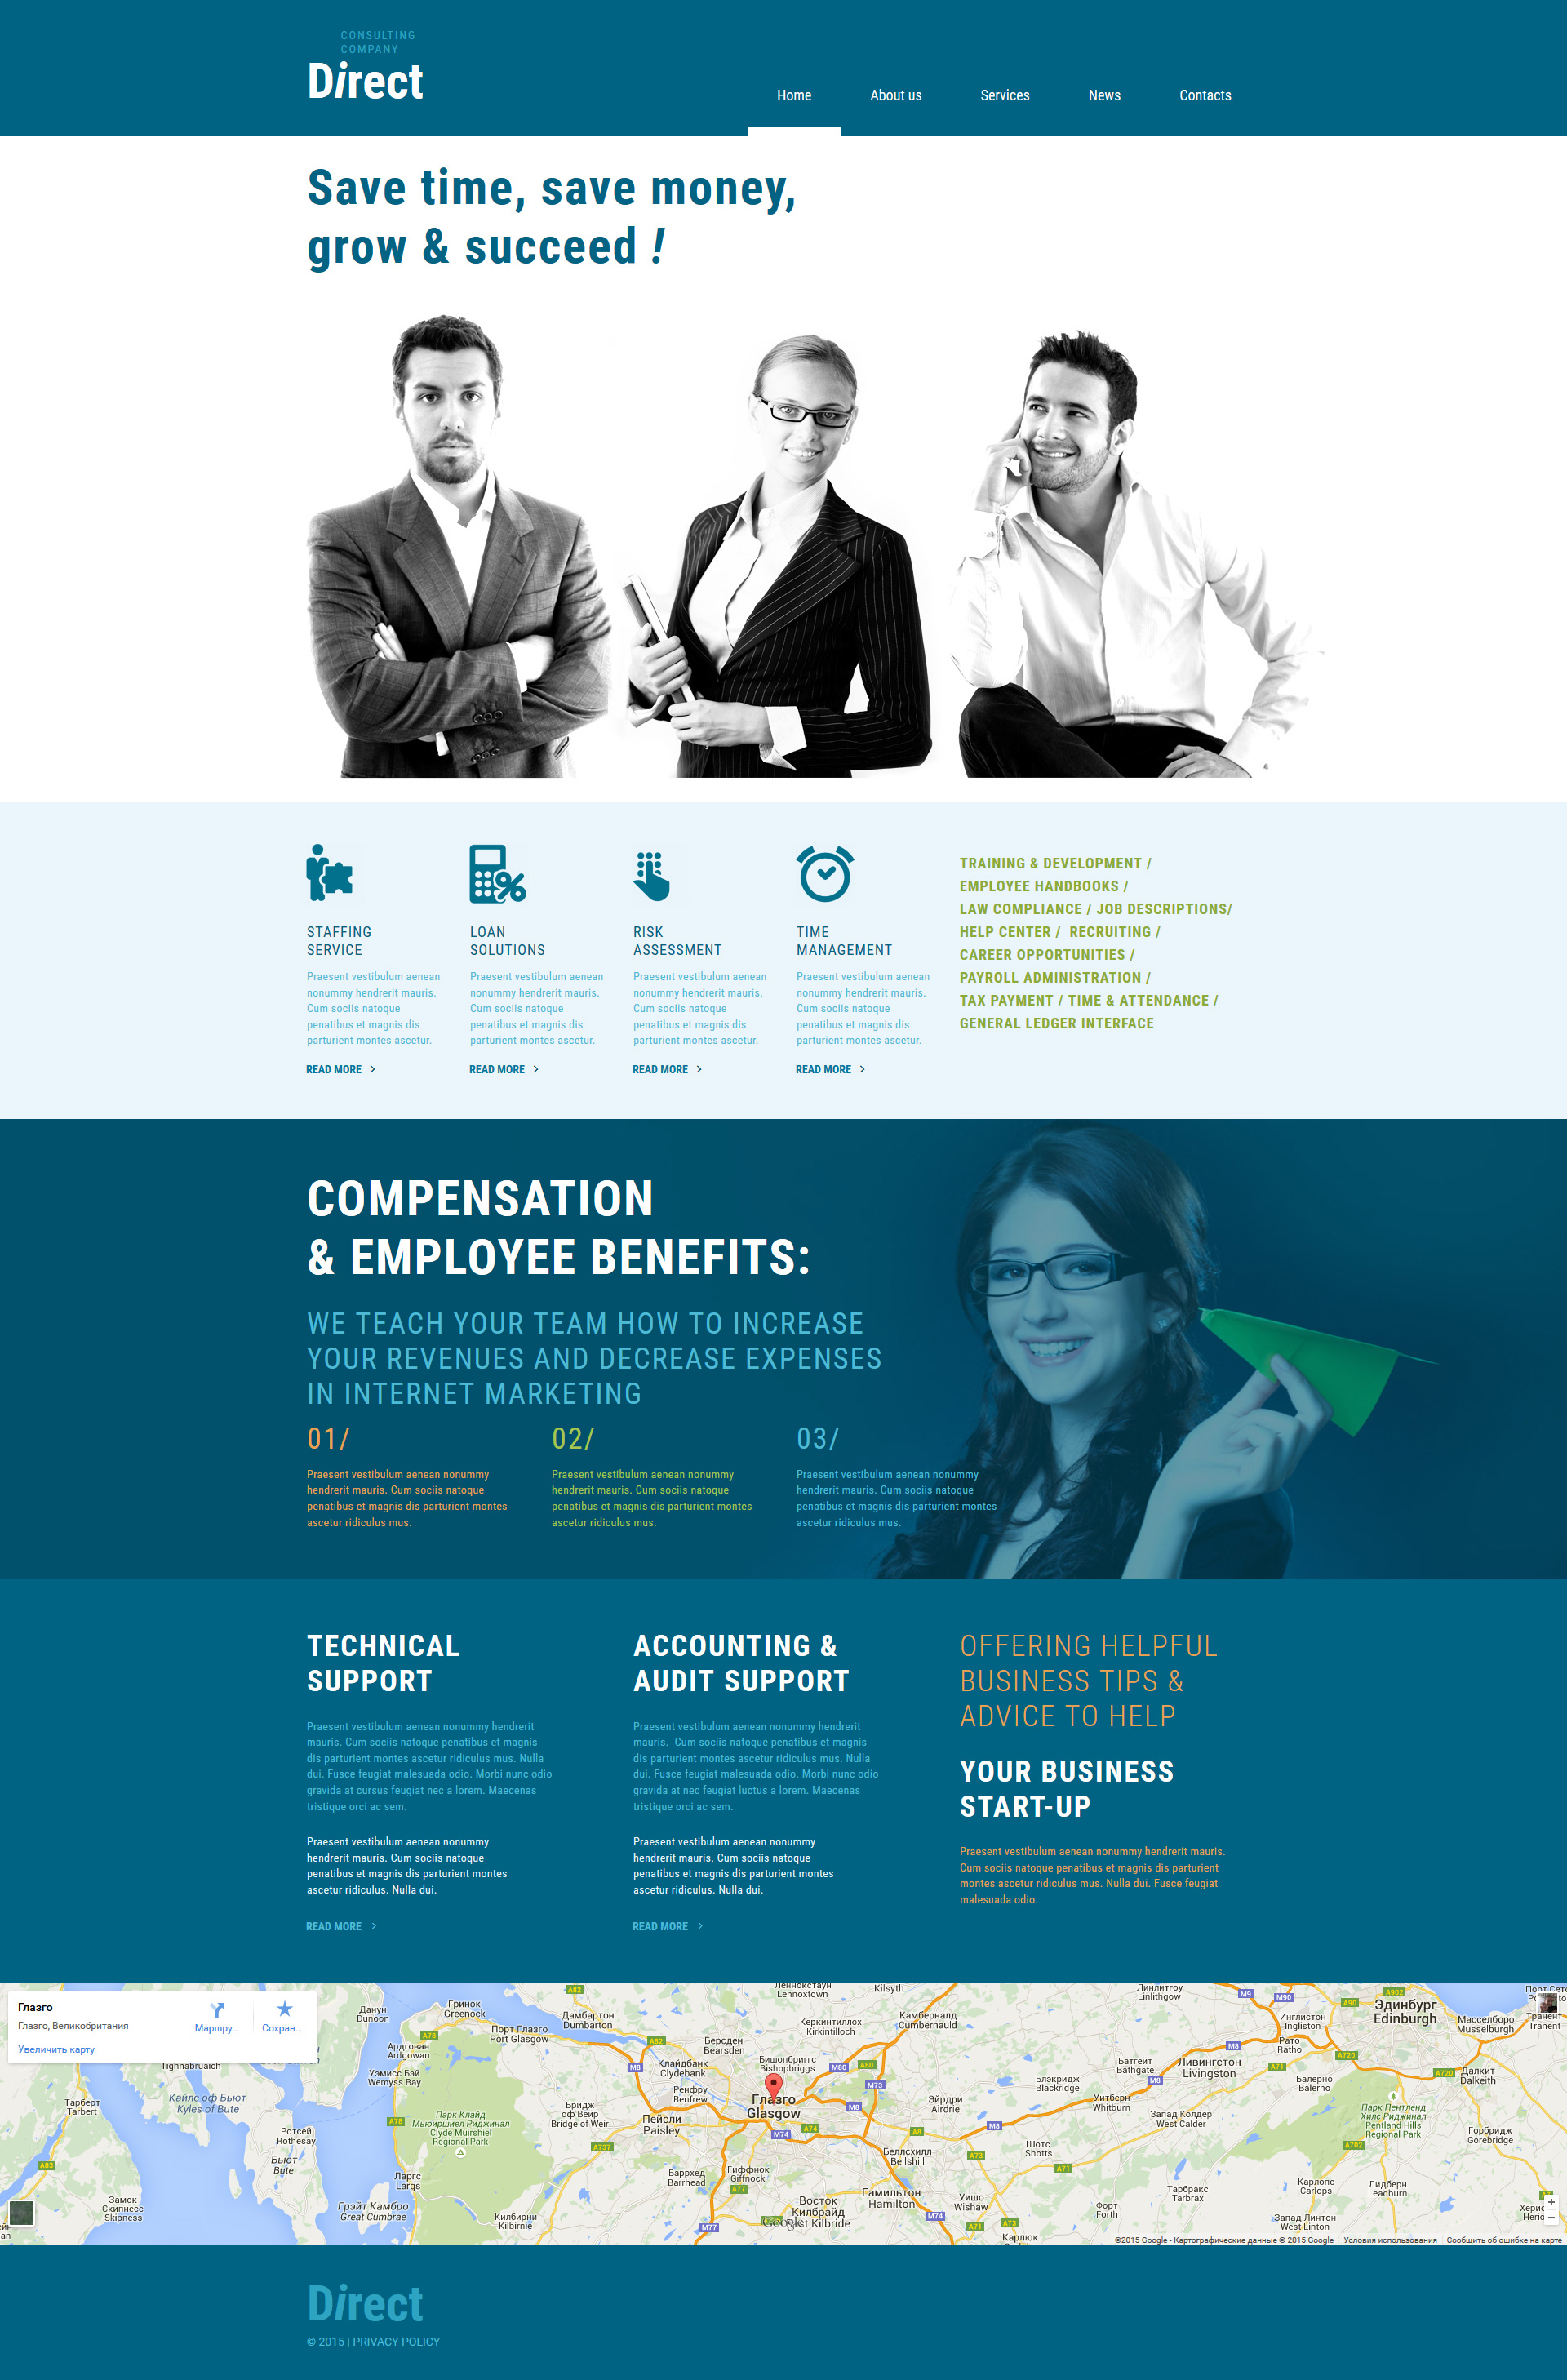 The Direct Consulting Moto CMS 3 Templates Design 53832, one of the best Moto CMS 3 templates of its kind (business), also known as direct consulting Moto CMS 3 template, business Moto CMS 3 template, success company Moto CMS 3 template, enterprise solution Moto CMS 3 template, business Moto CMS 3 template, industry Moto CMS 3 template, technical Moto CMS 3 template, clients Moto CMS 3 template, customer support Moto CMS 3 template, automate Moto CMS 3 template, flow Moto CMS 3 template, services Moto CMS 3 template, plug-in Moto CMS 3 template, flex Moto CMS 3 template, profile Moto CMS 3 template, principles Moto CMS 3 template, web products Moto CMS 3 template, technology system and related with direct consulting, business, success company, enterprise solution, business, industry, technical, clients, customer support, automate, flow, services, plug-in, flex, profile, principles, web products, technology system, etc.